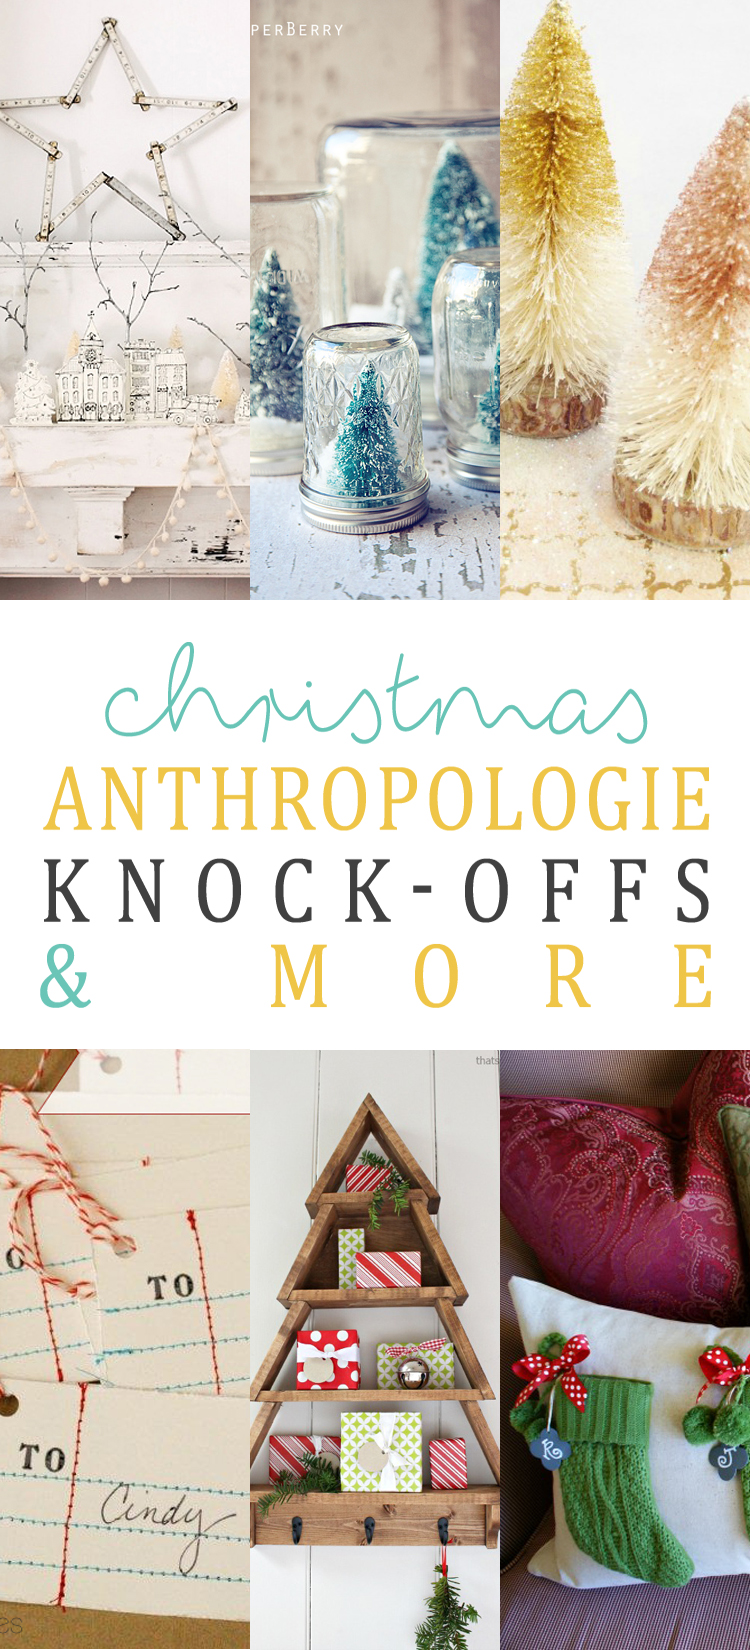 Knock Offs Toy Meets World: Christmas Anthropologie Knock-Offs And More